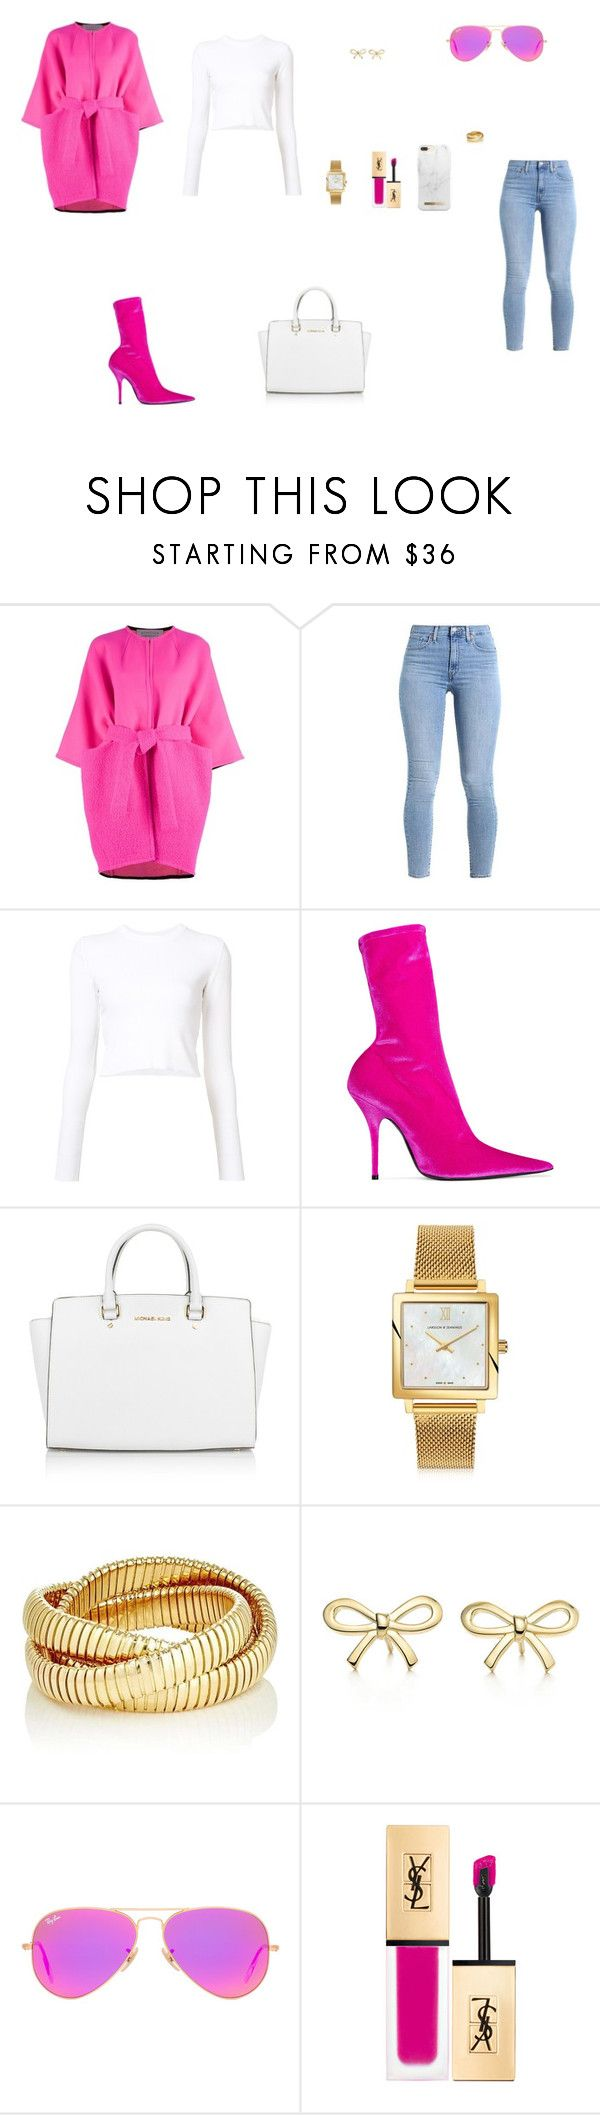 """Look do Dia"" by julianaf1609 ❤ liked on Polyvore featuring Gianluca Capannolo, Proenza Schouler, Balenciaga, Michael Kors, Larsson & Jennings, Sidney Garber, Tiffany & Co., Ray-Ban and iDeal of Sweden"